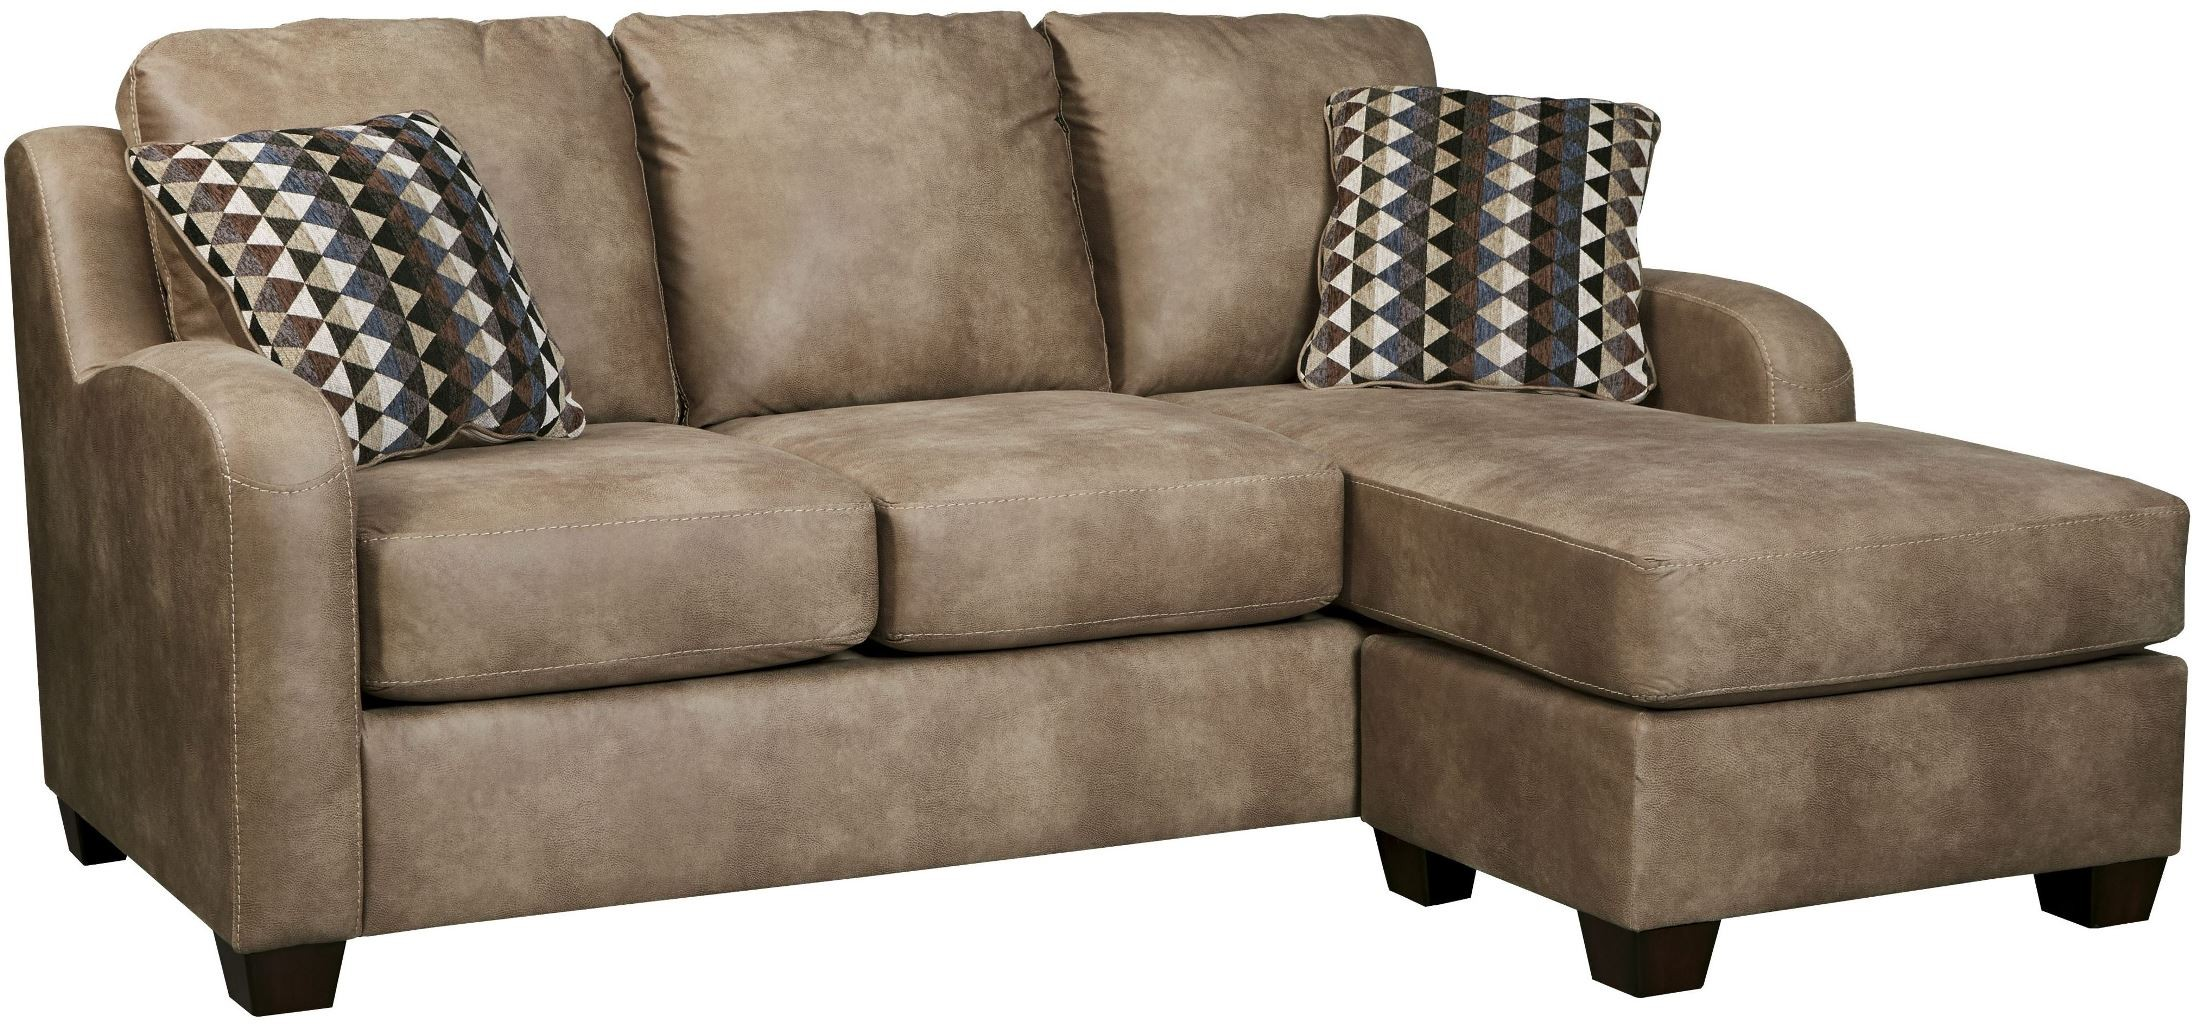 Alturo dune sofa chaise from ashley 6000318 coleman for Ashley sectional with chaise